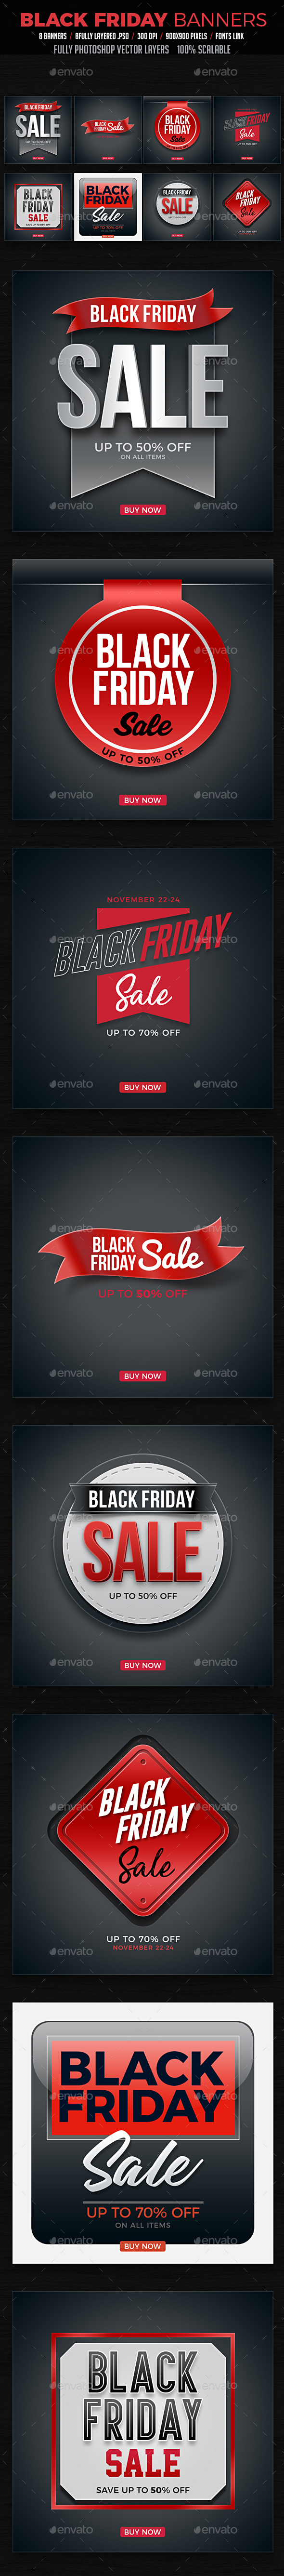 Black Friday Banners - Badges & Stickers Web Elements